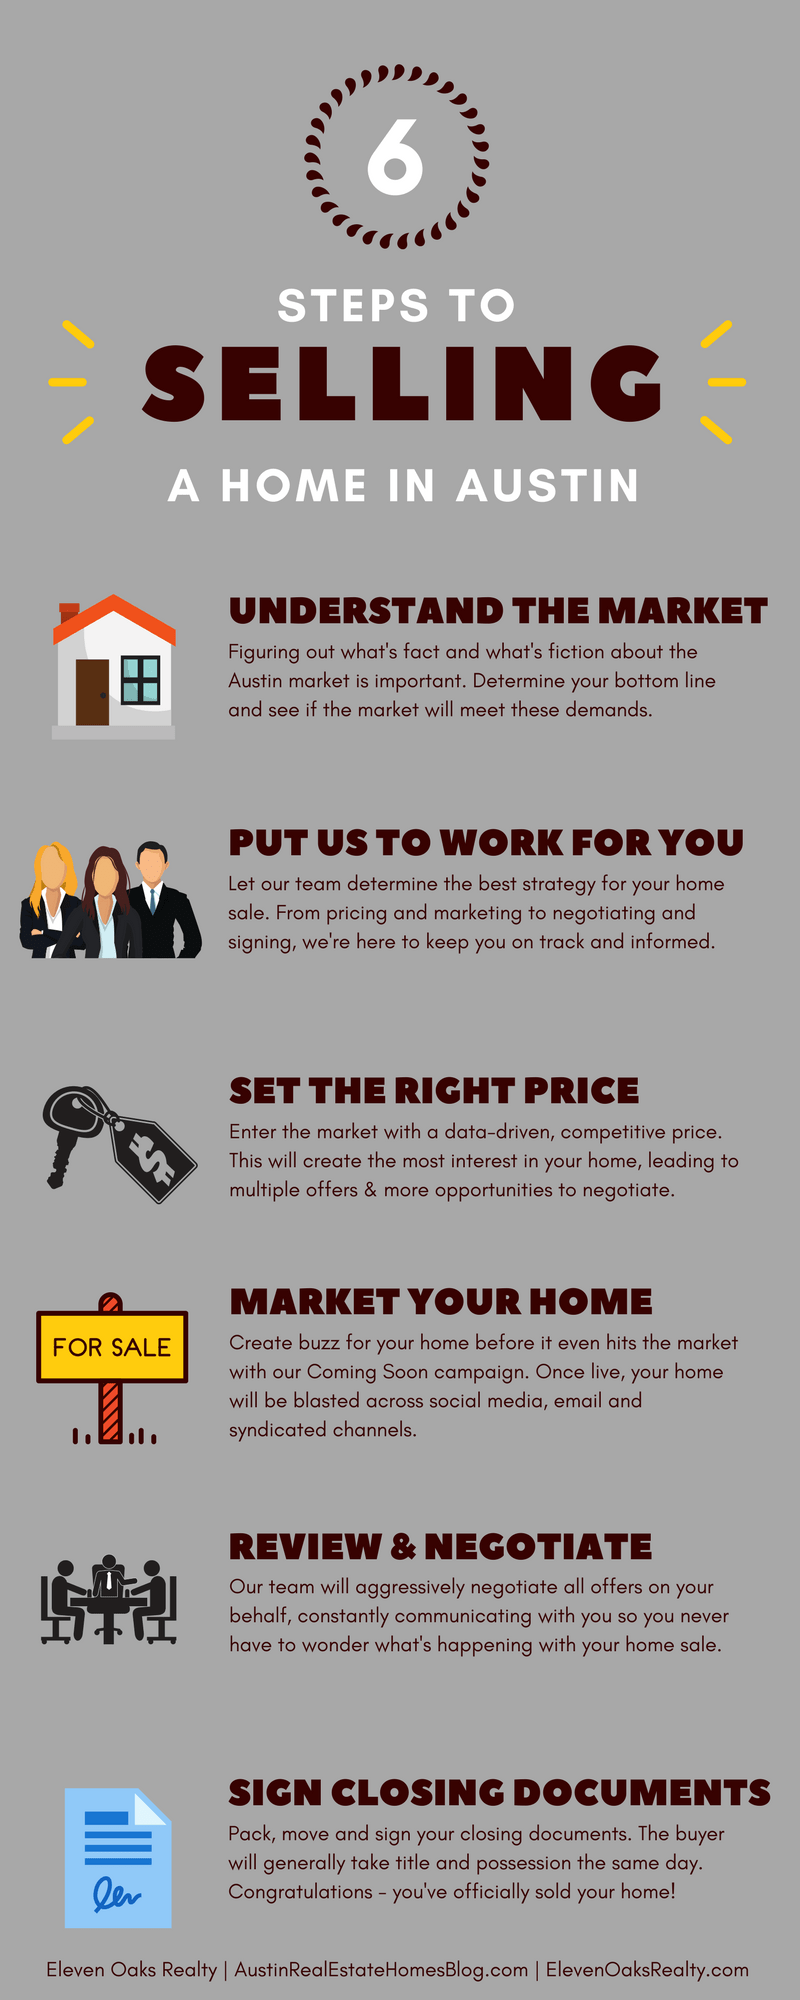 6 Steps to Selling a Home in Austin